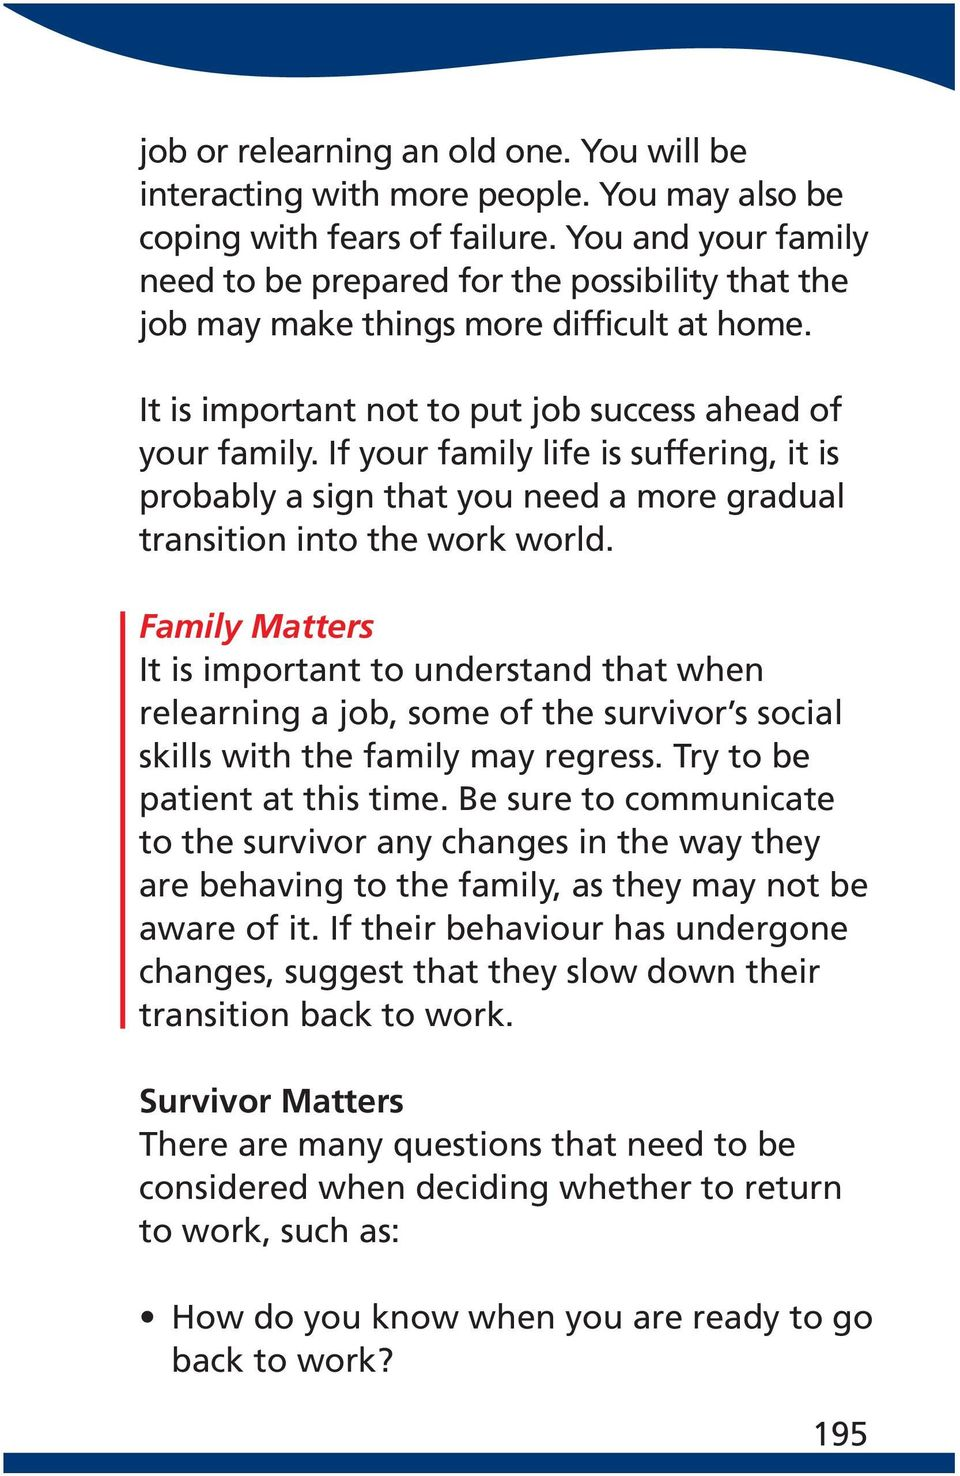 If your family life is suffering, it is probably a sign that you need a more gradual transition into the work world.